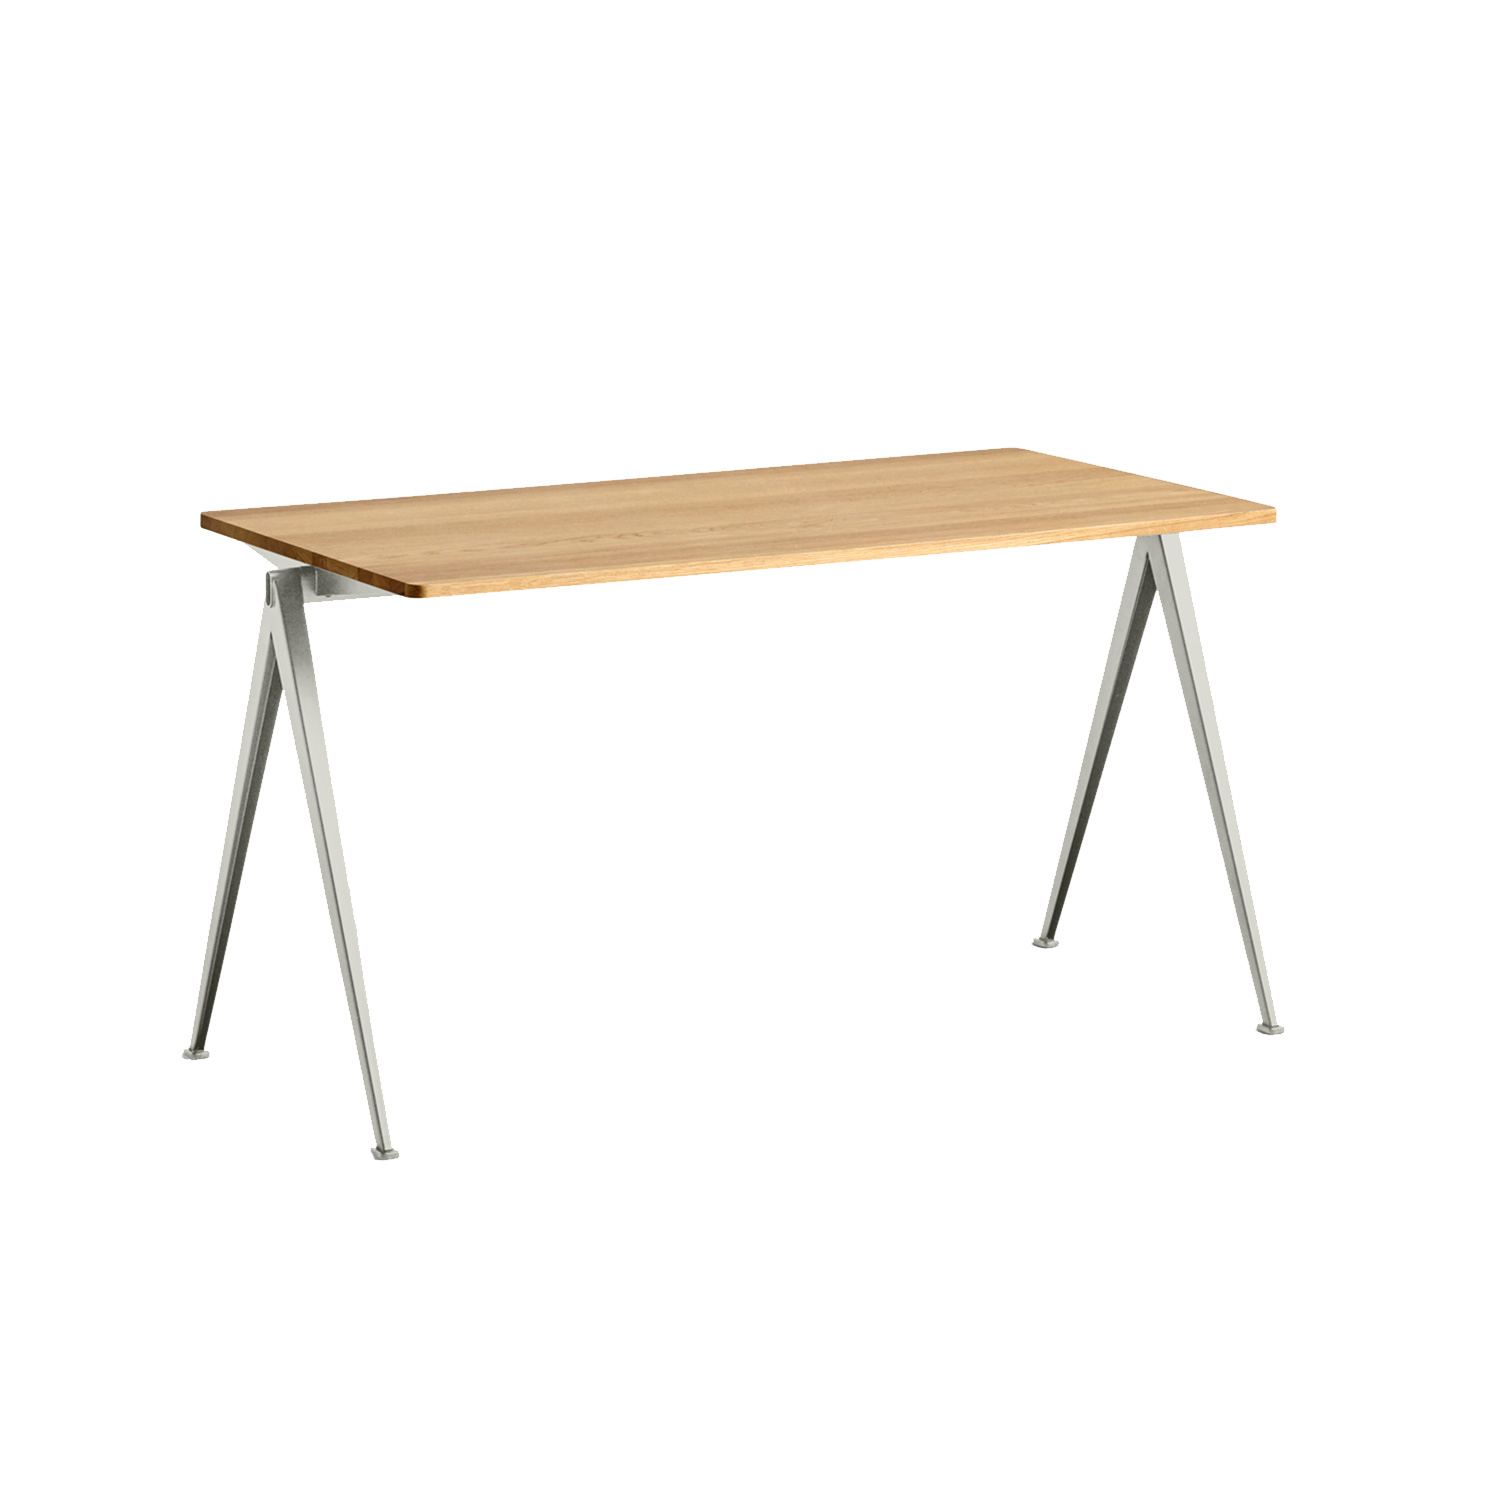 Pyramid desk 01 140x65, beige frame/clear